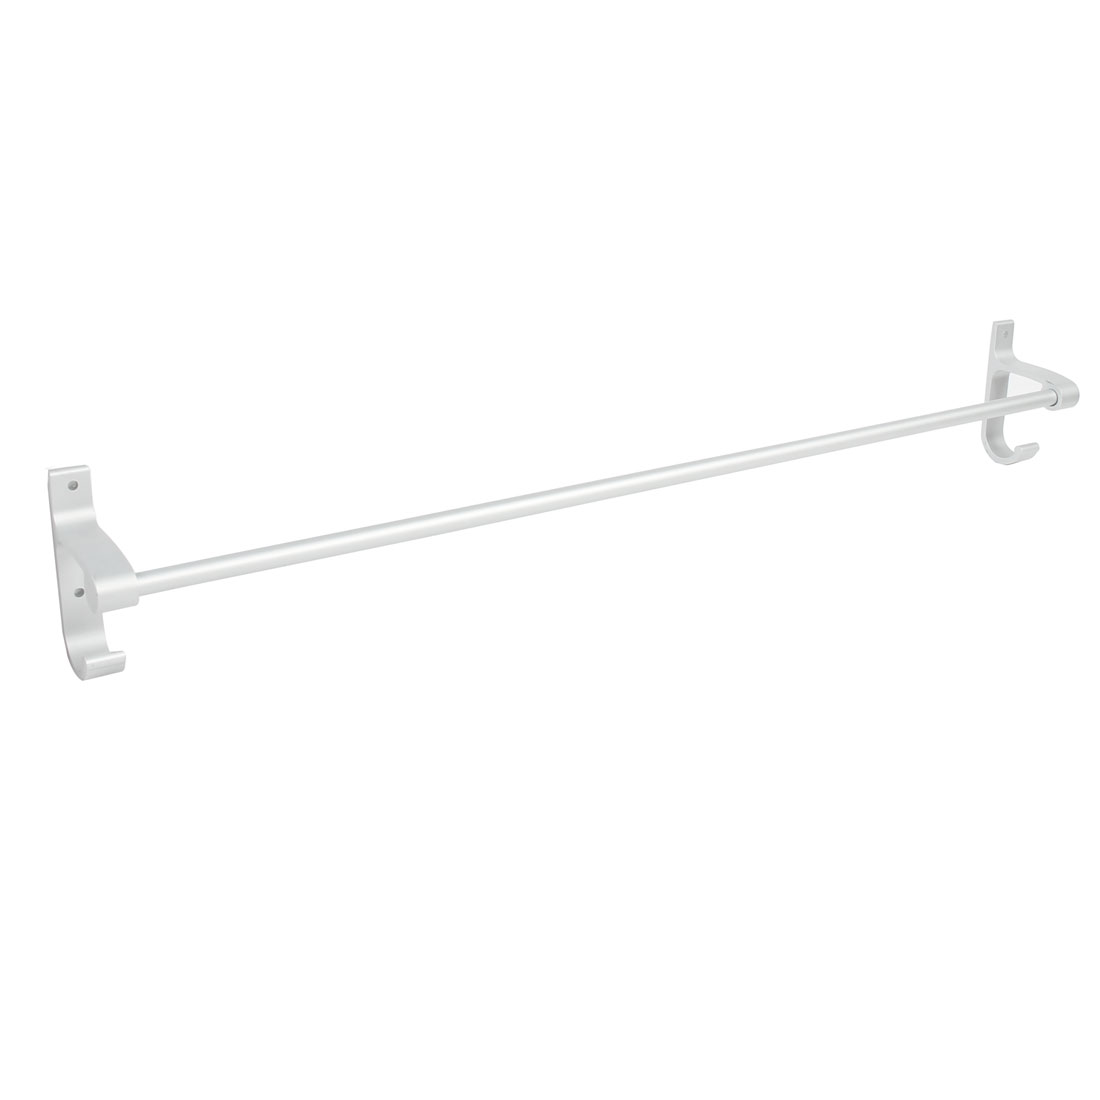 Hotel Home Bathroom Alumimum Wall Mount Single Bar Towel Rack Hanger 50cm Length